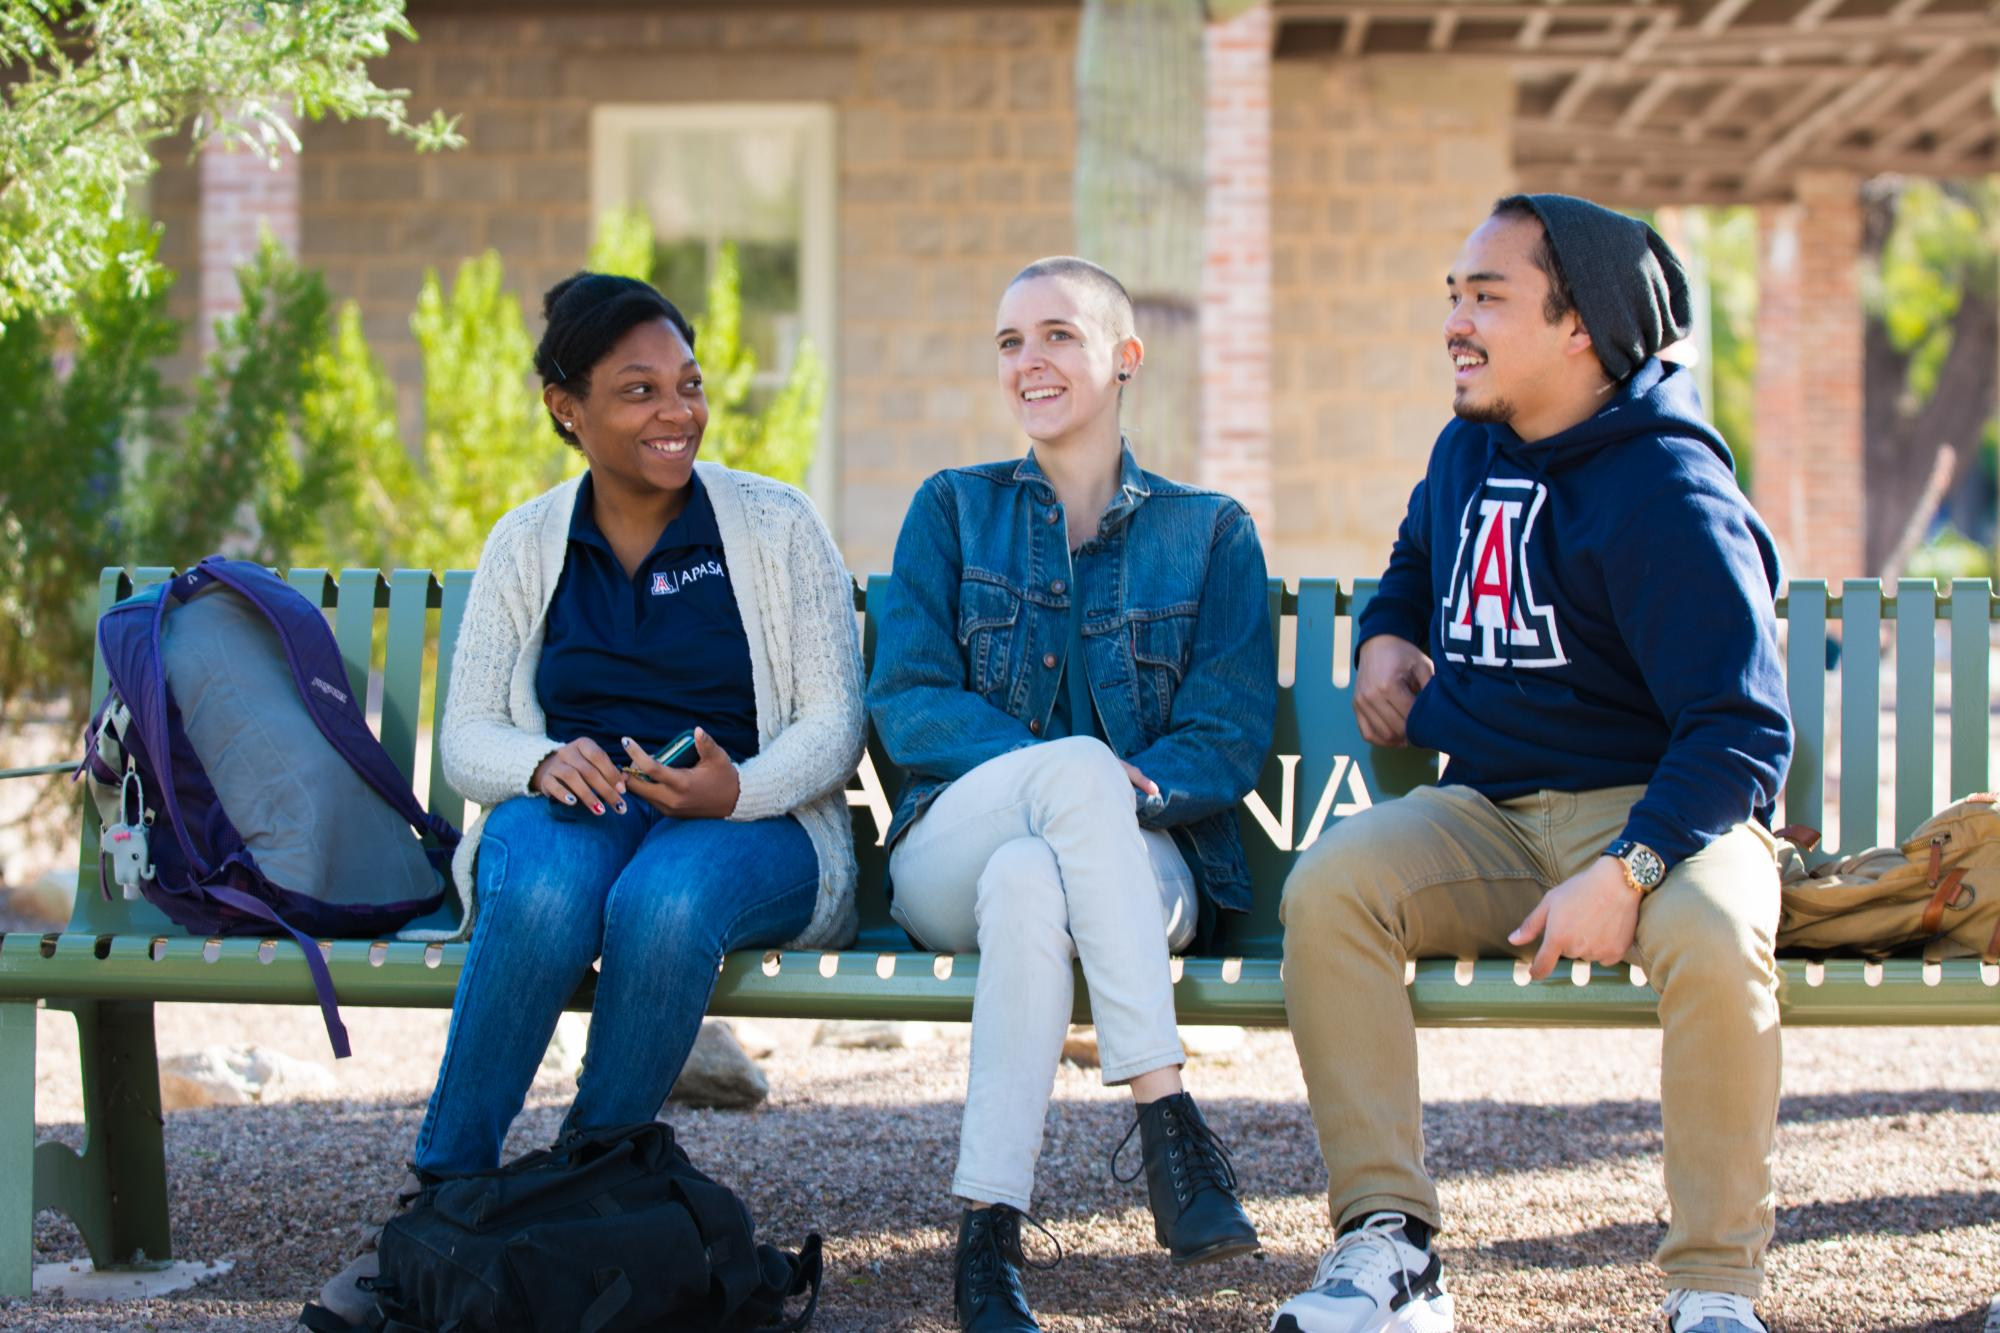 A group of University of Arizona students sitting and talking on a bench.